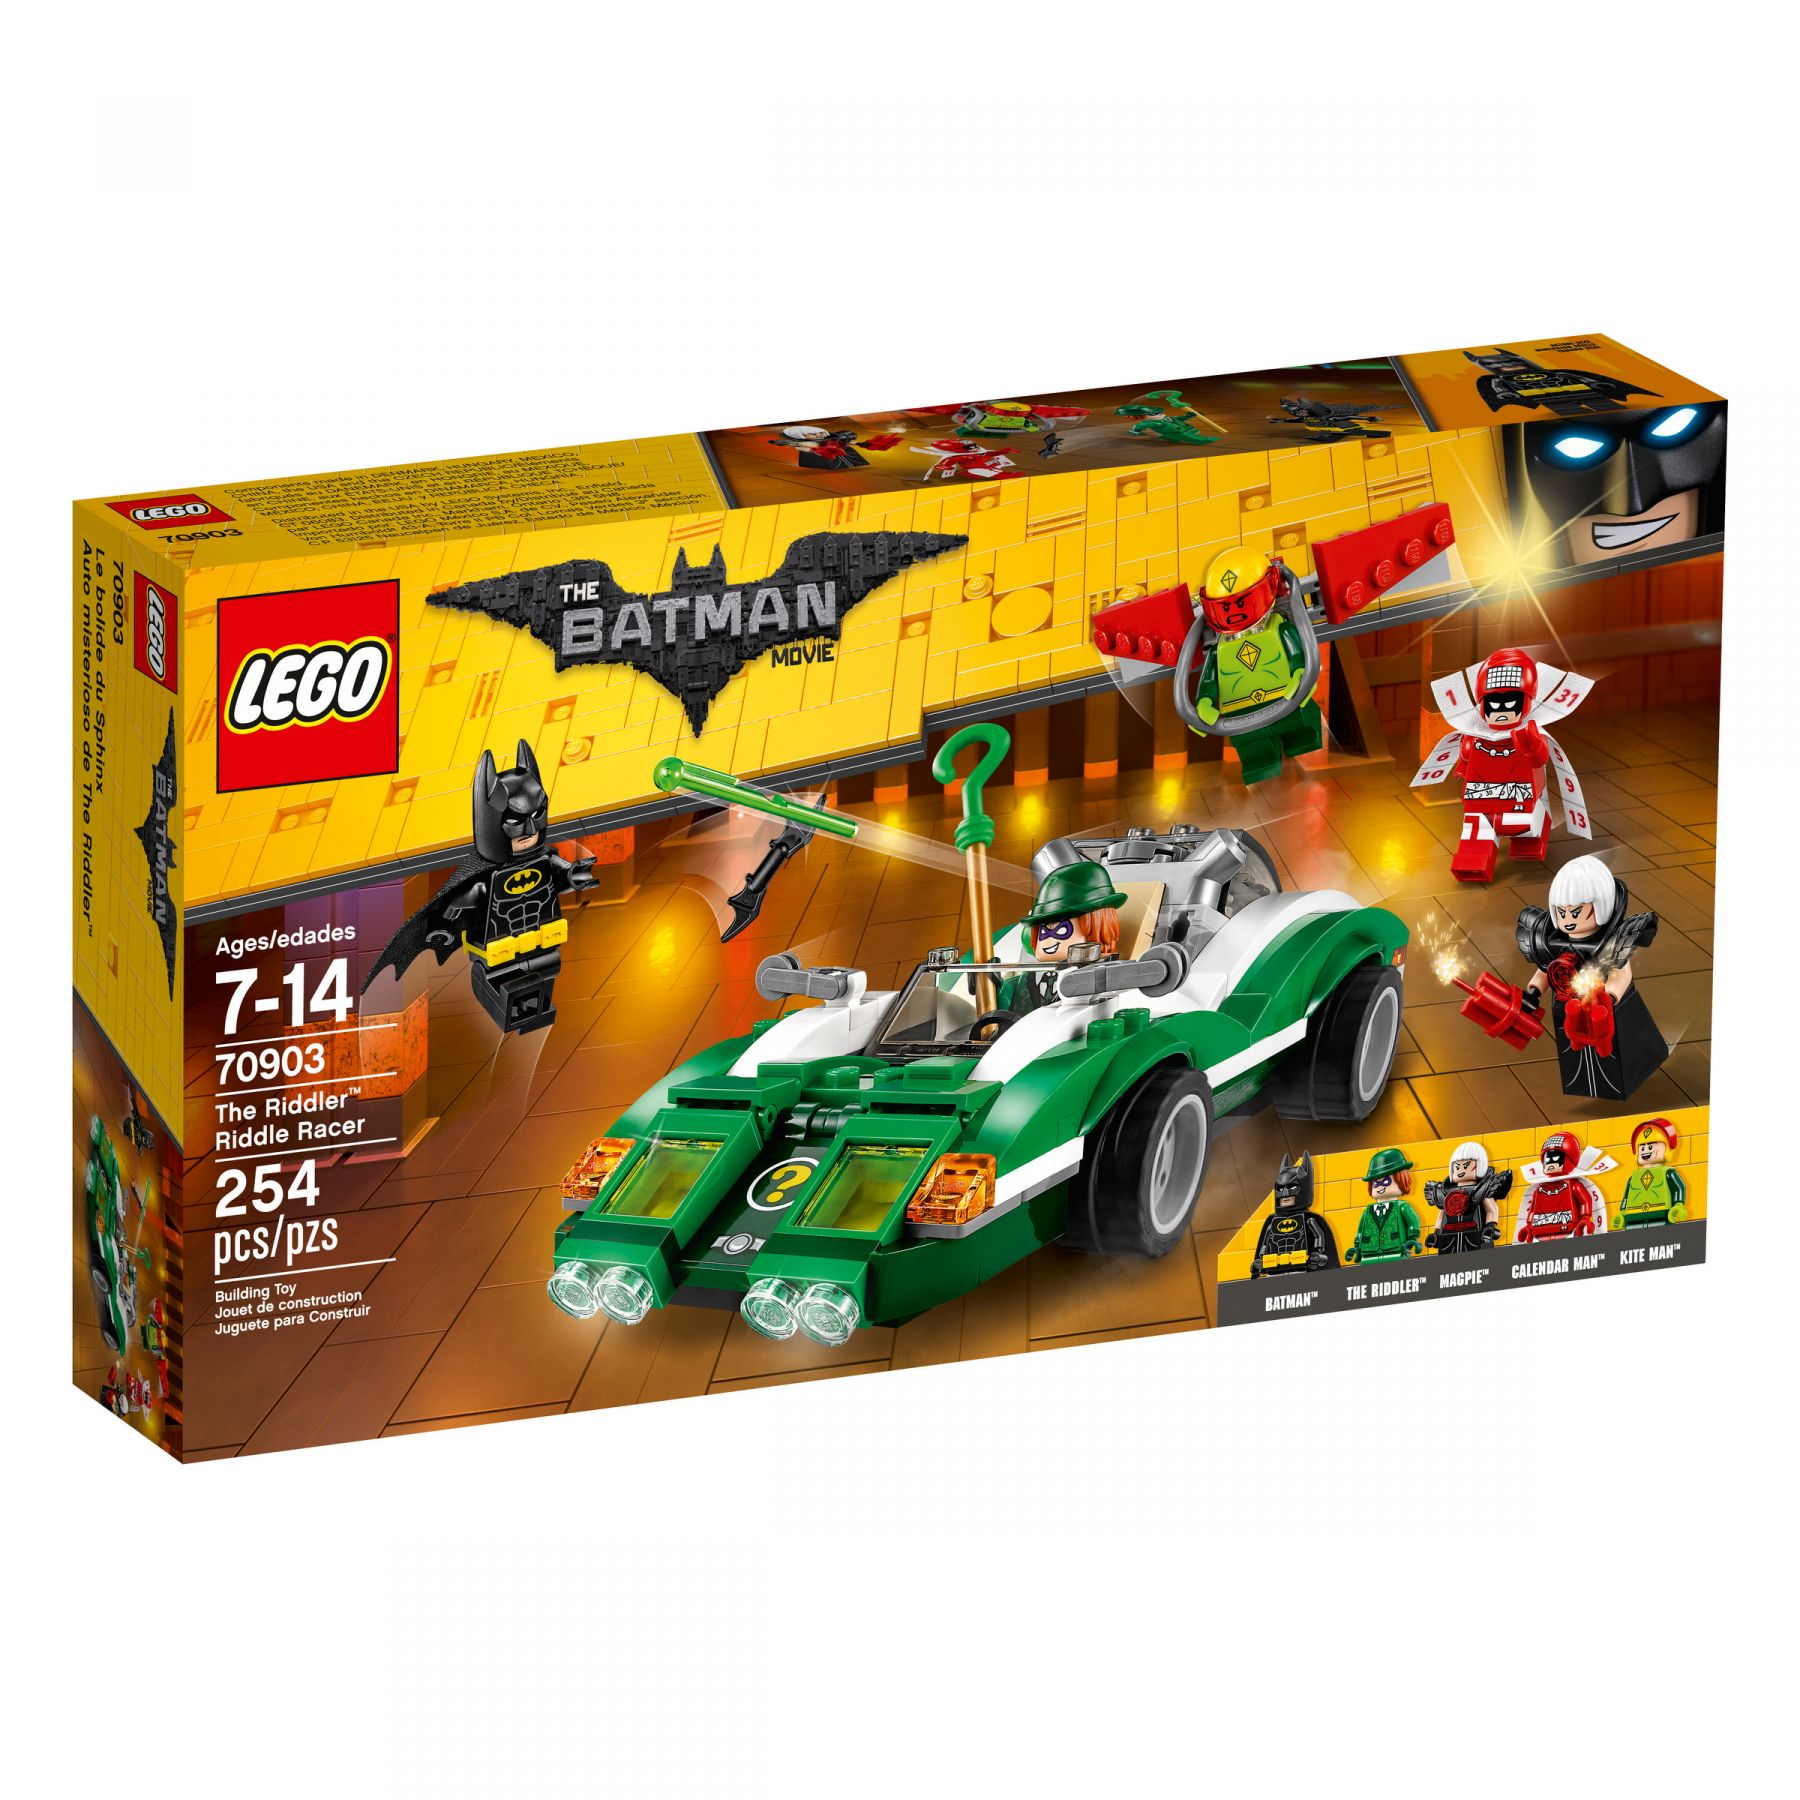 LEGO The LEGO Batman Movie 70903 The Riddler™: Riddle Racer LEGO_70903_alt1.jpg